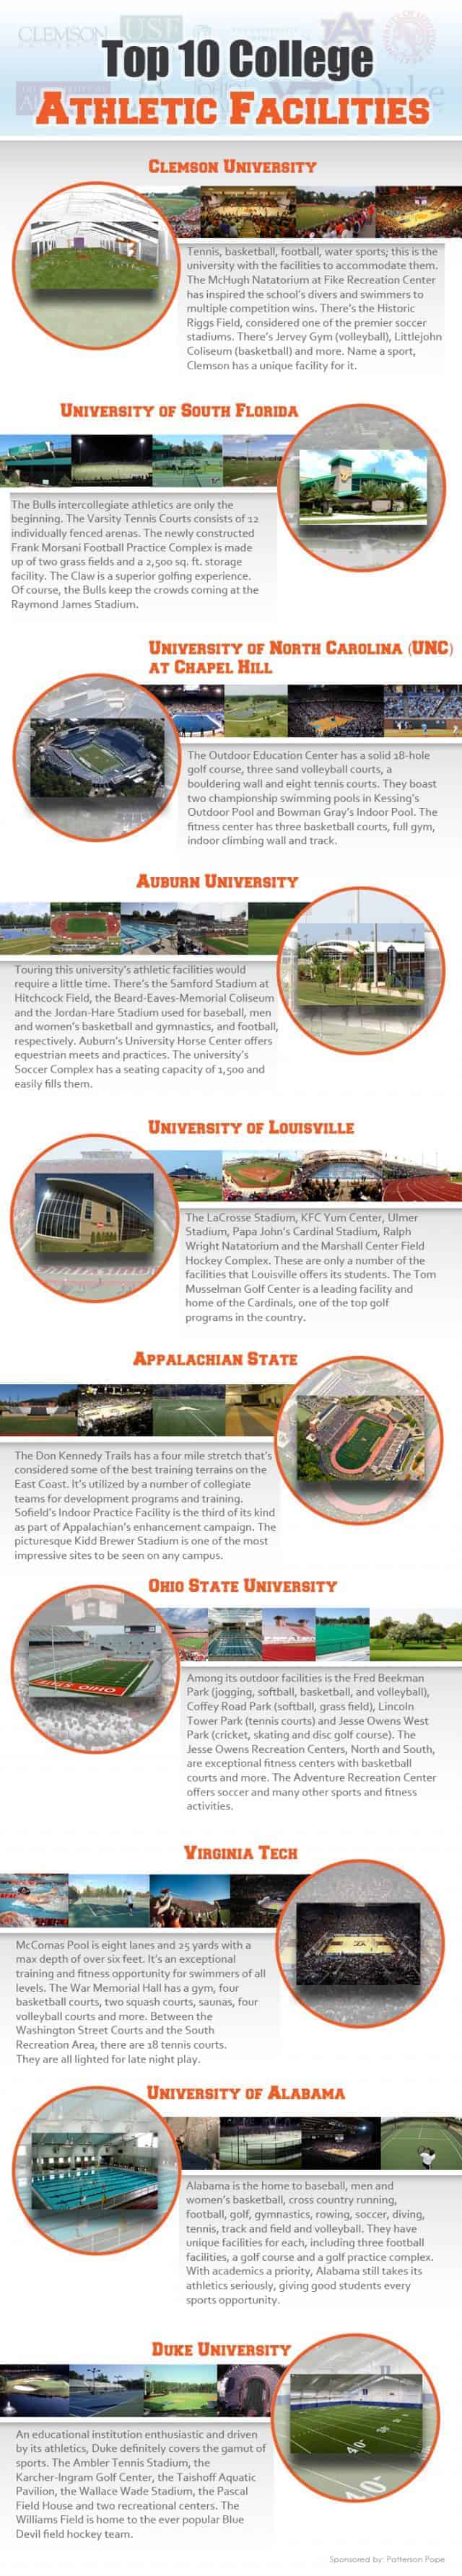 Top Ten College Athletic Facilities